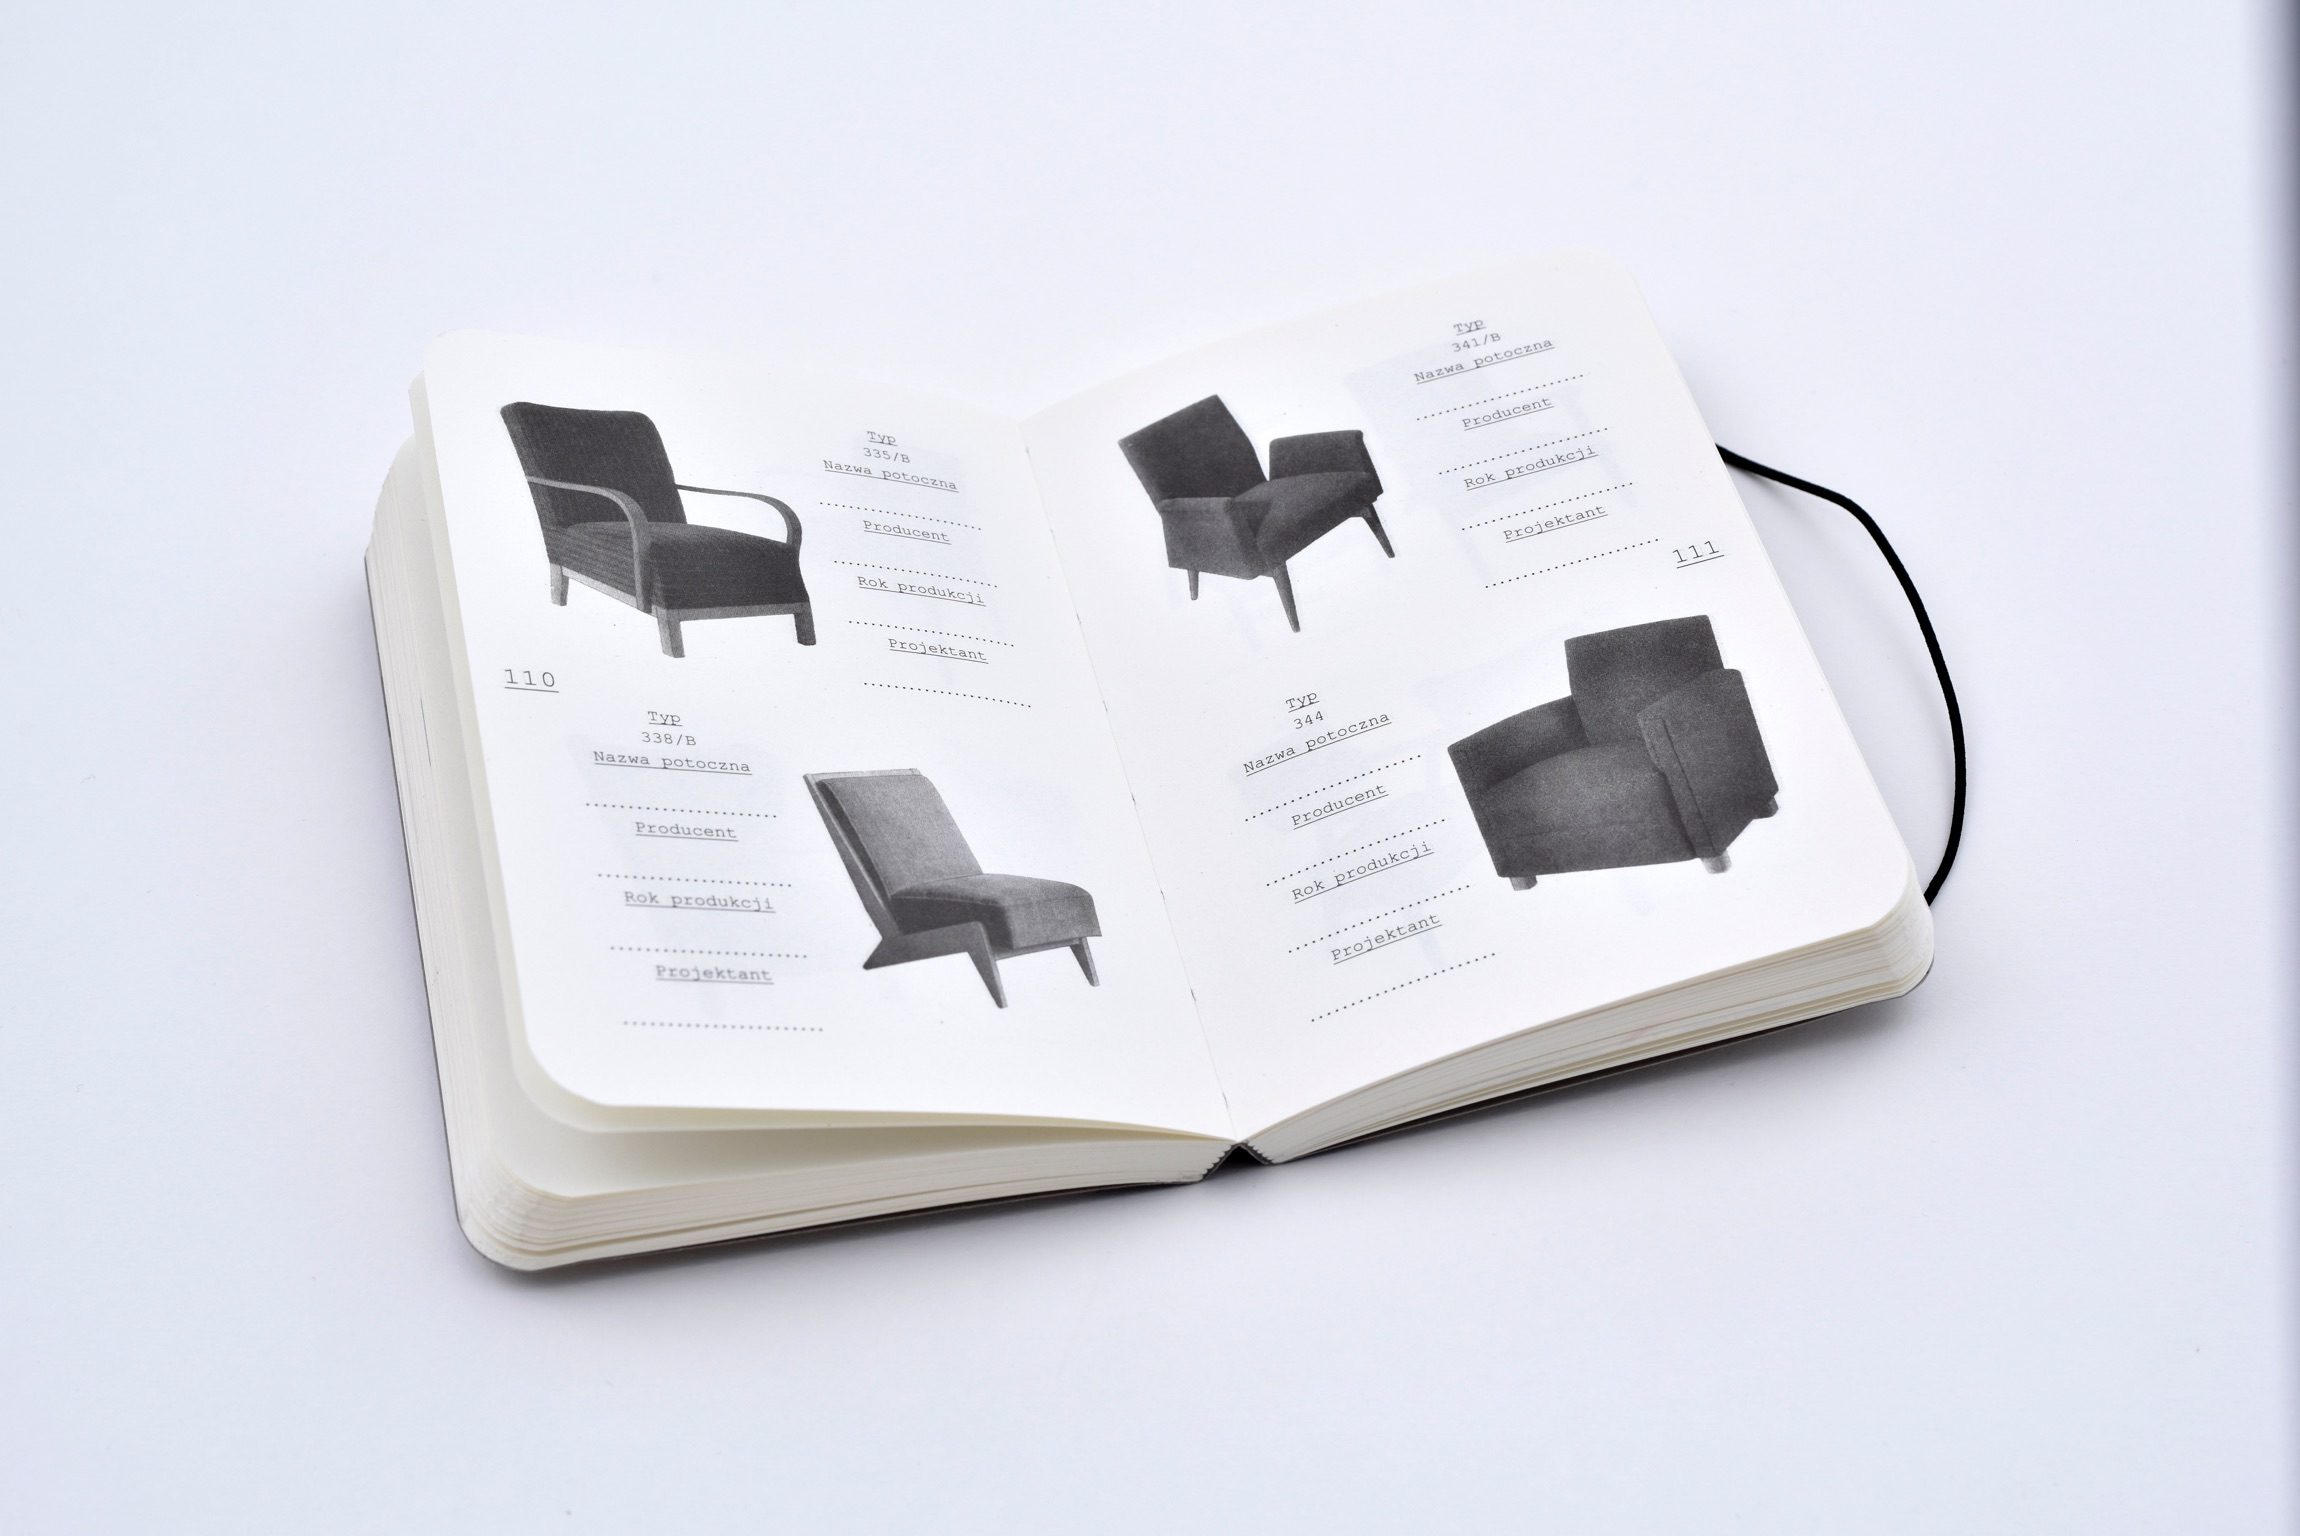 Item catalogs of furniture pnrm / chairs, armchairs